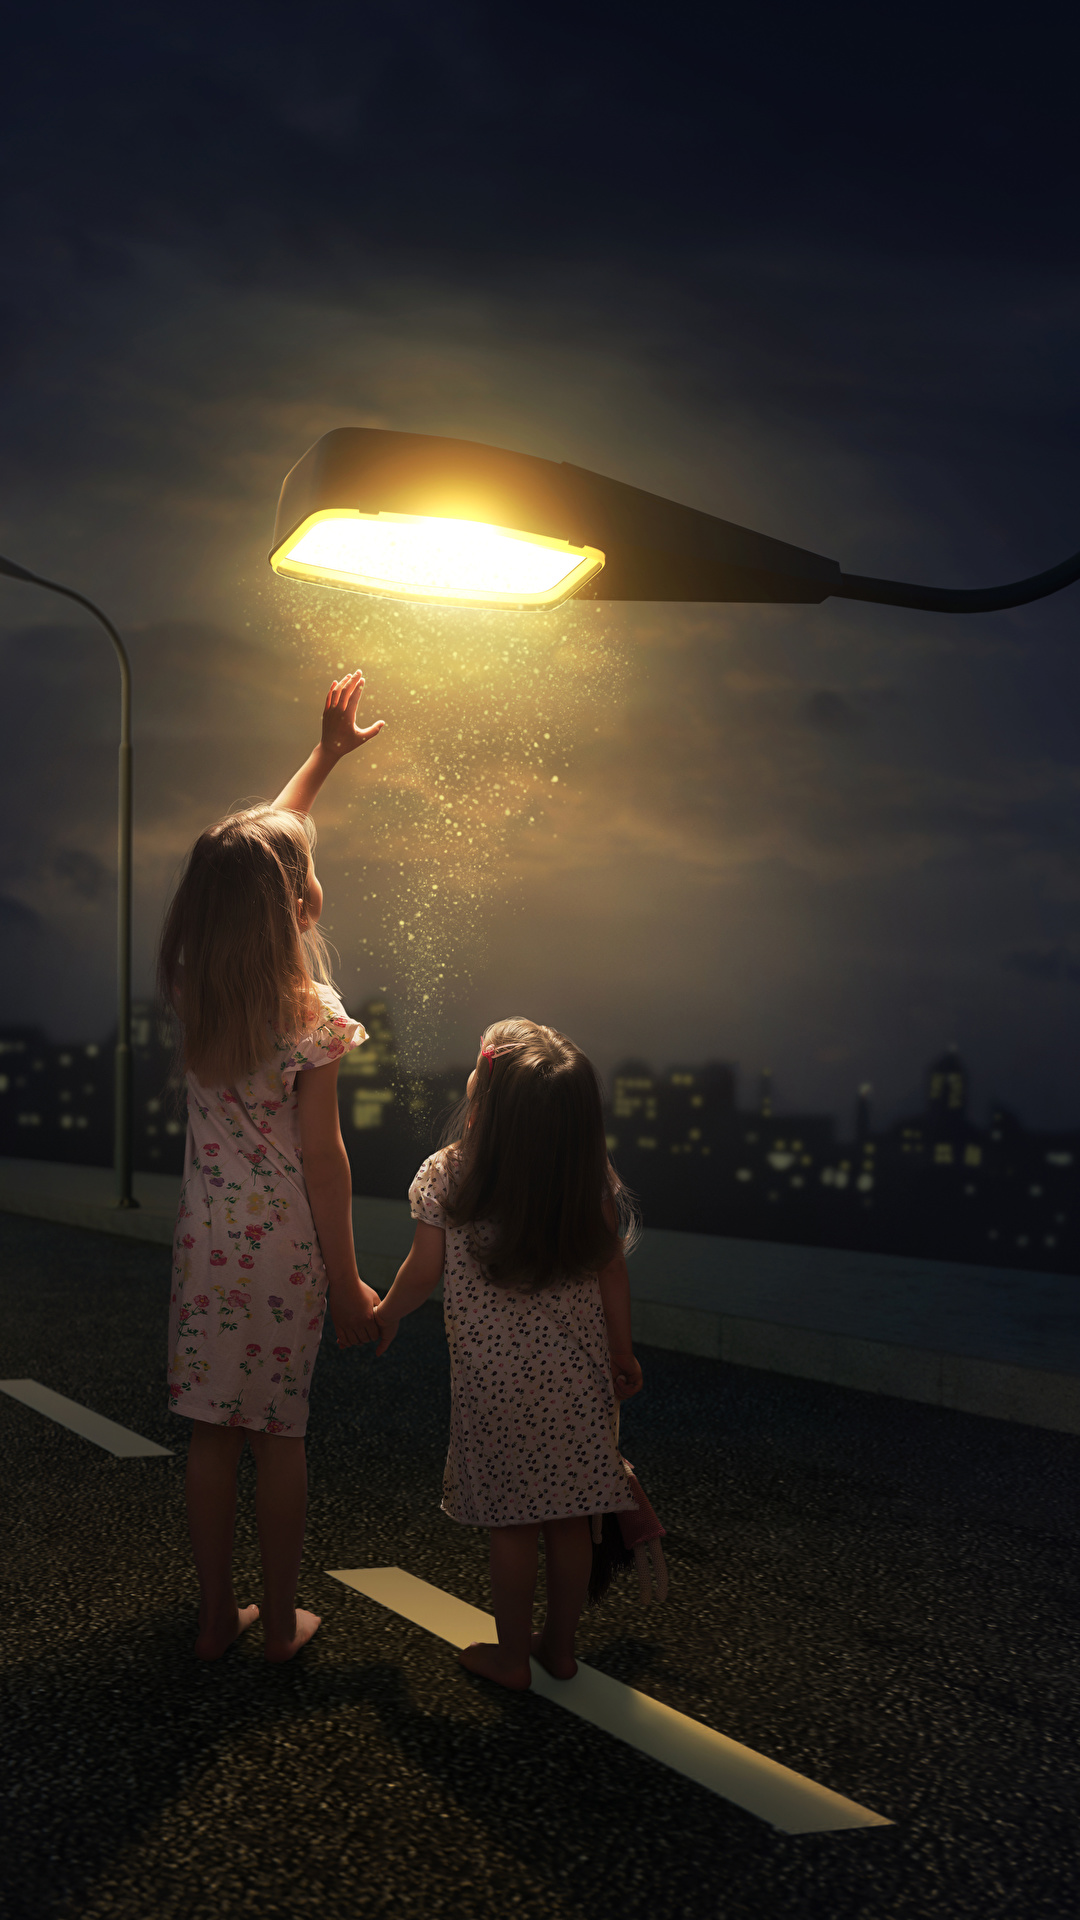 Images Little Girls Children Two Roads Creative Night Time 1080x1920